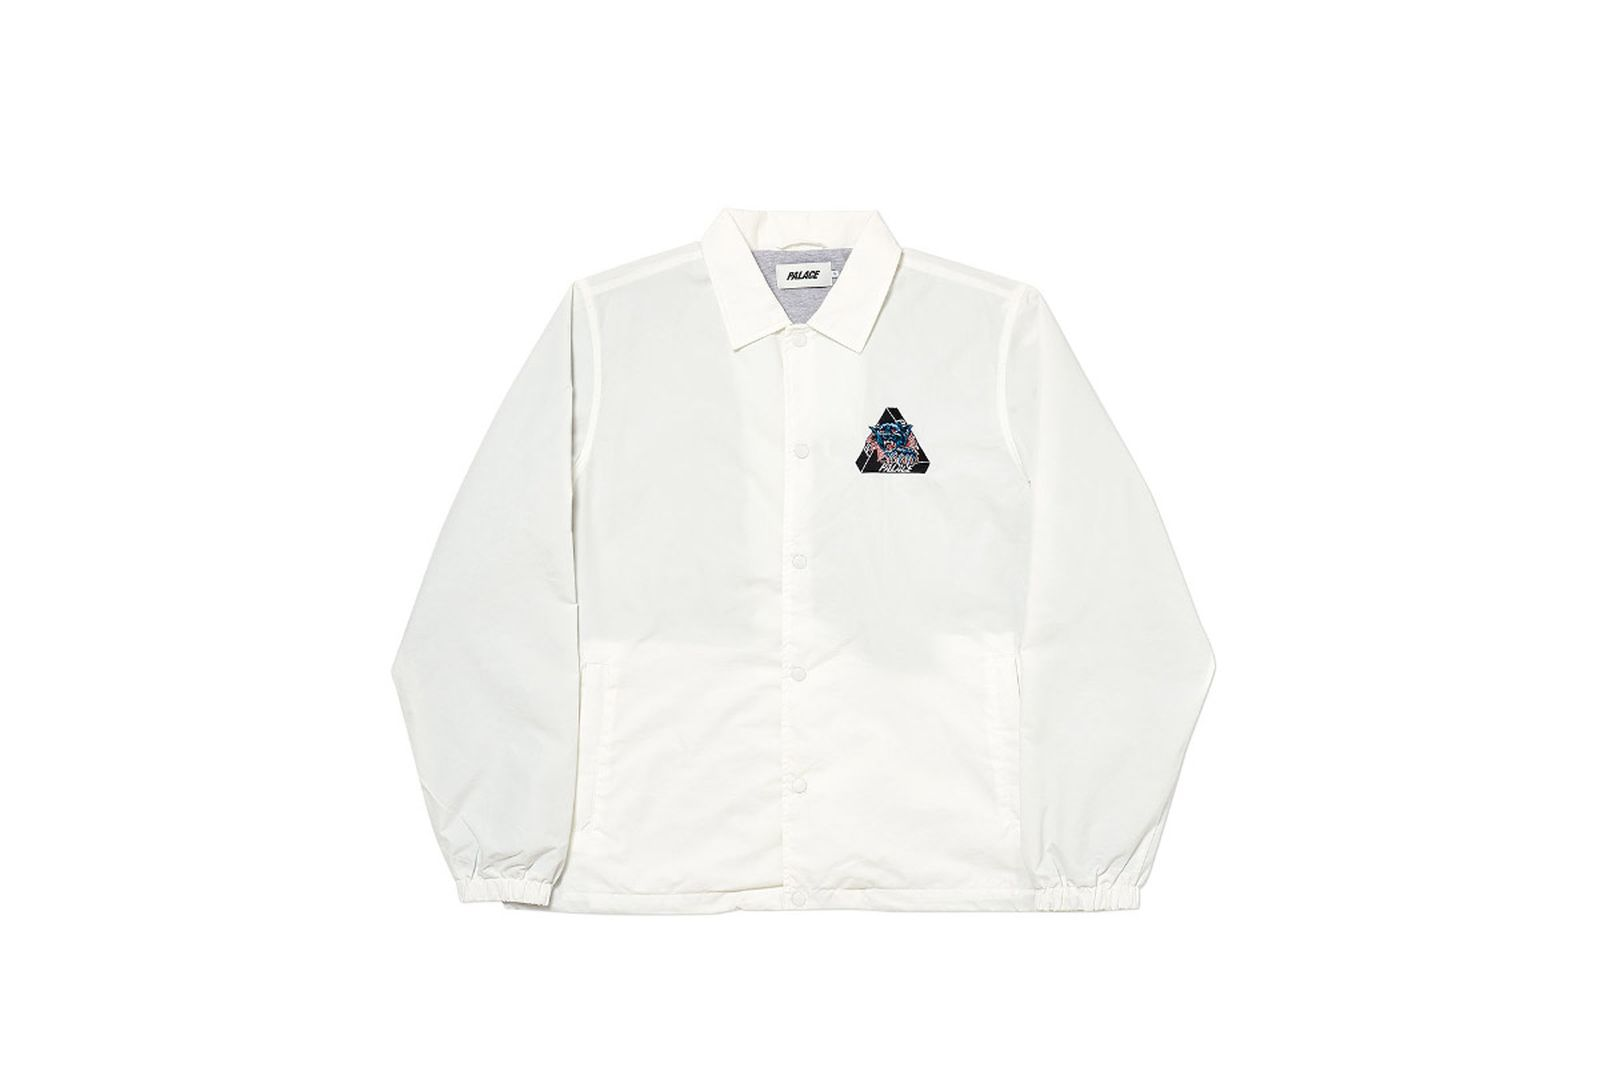 Palace 2019 Autumn Jacket Ripped Coach white front fw19